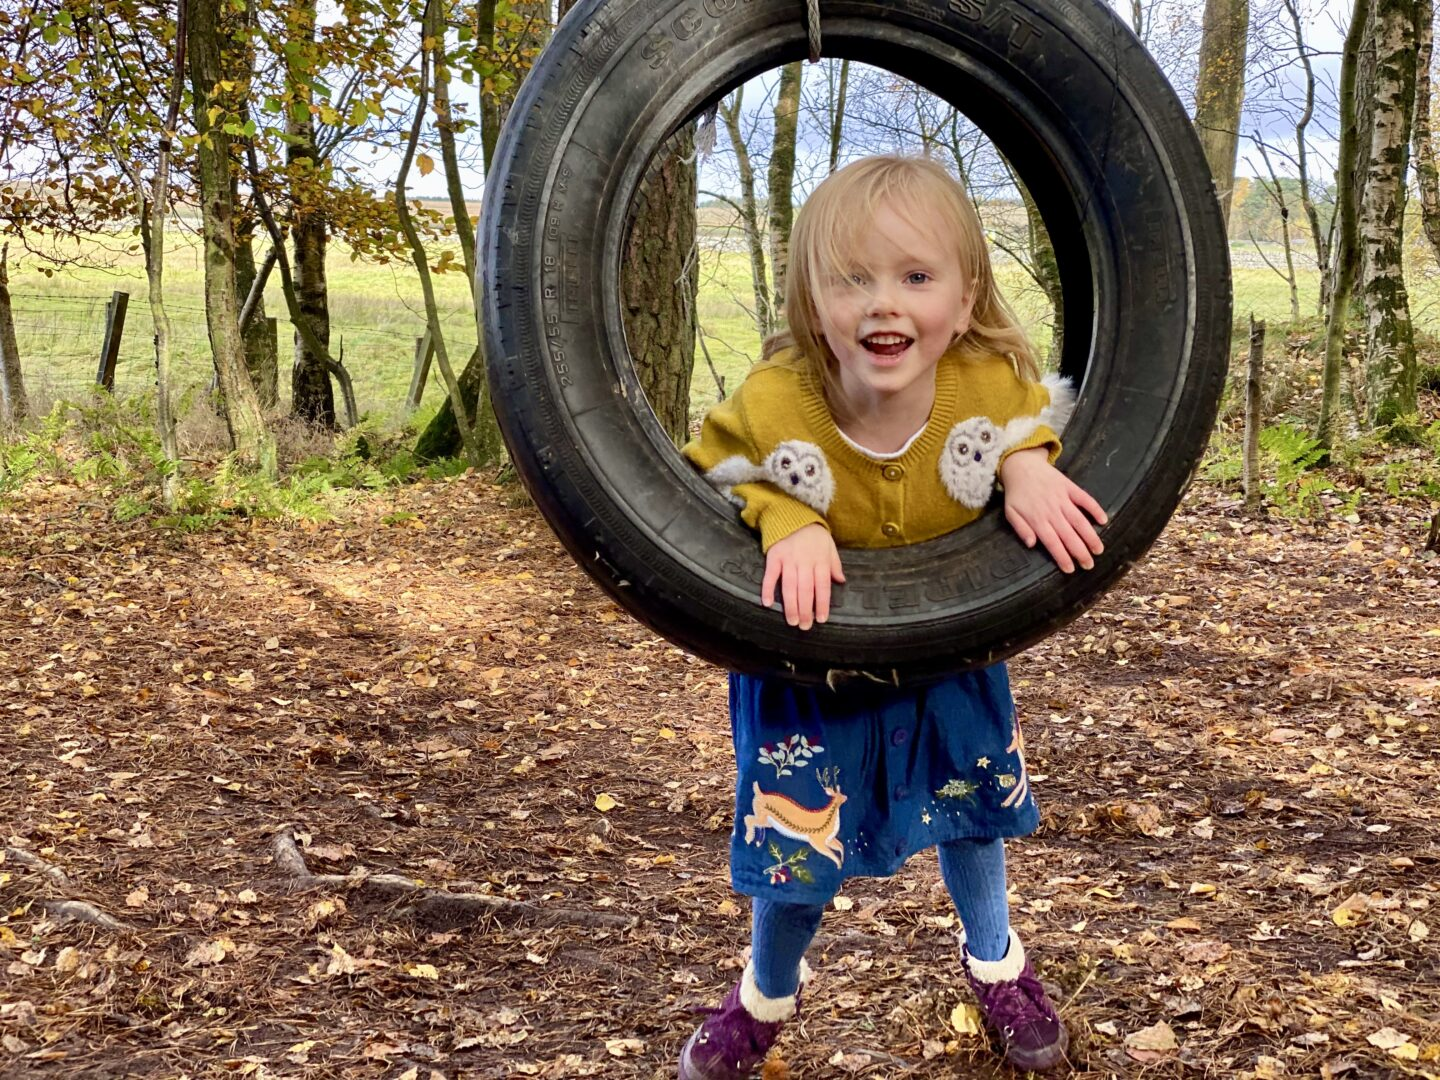 Girl playing on tyre swing in the woods